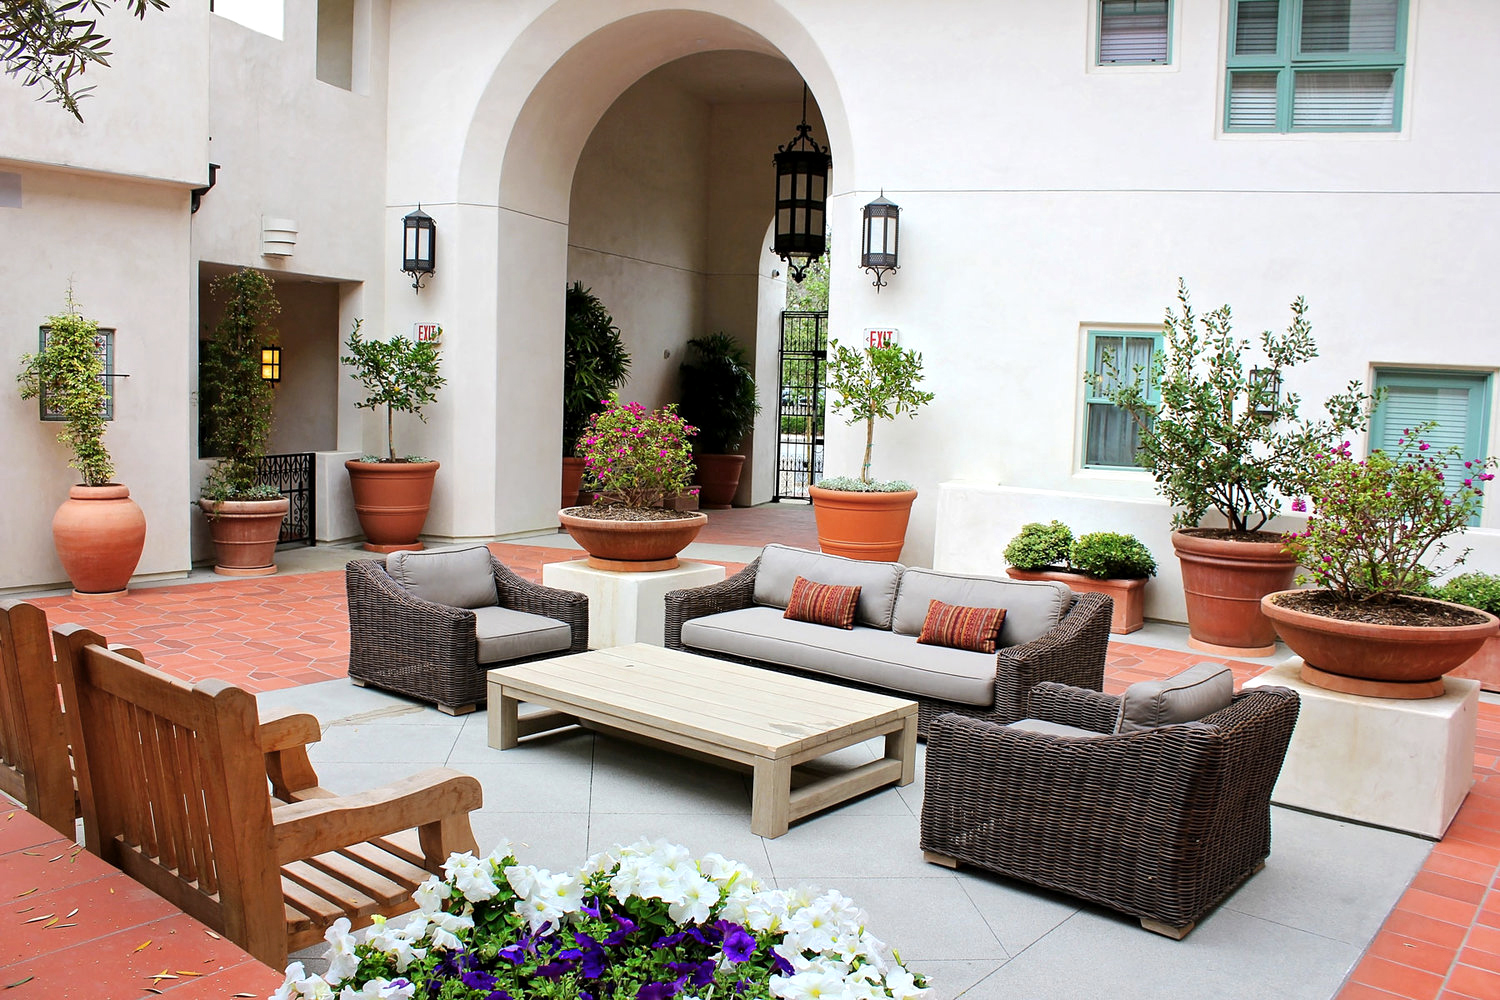 2-spanish-central-patio-outdoor-living-rollins-andrew copy.jpg